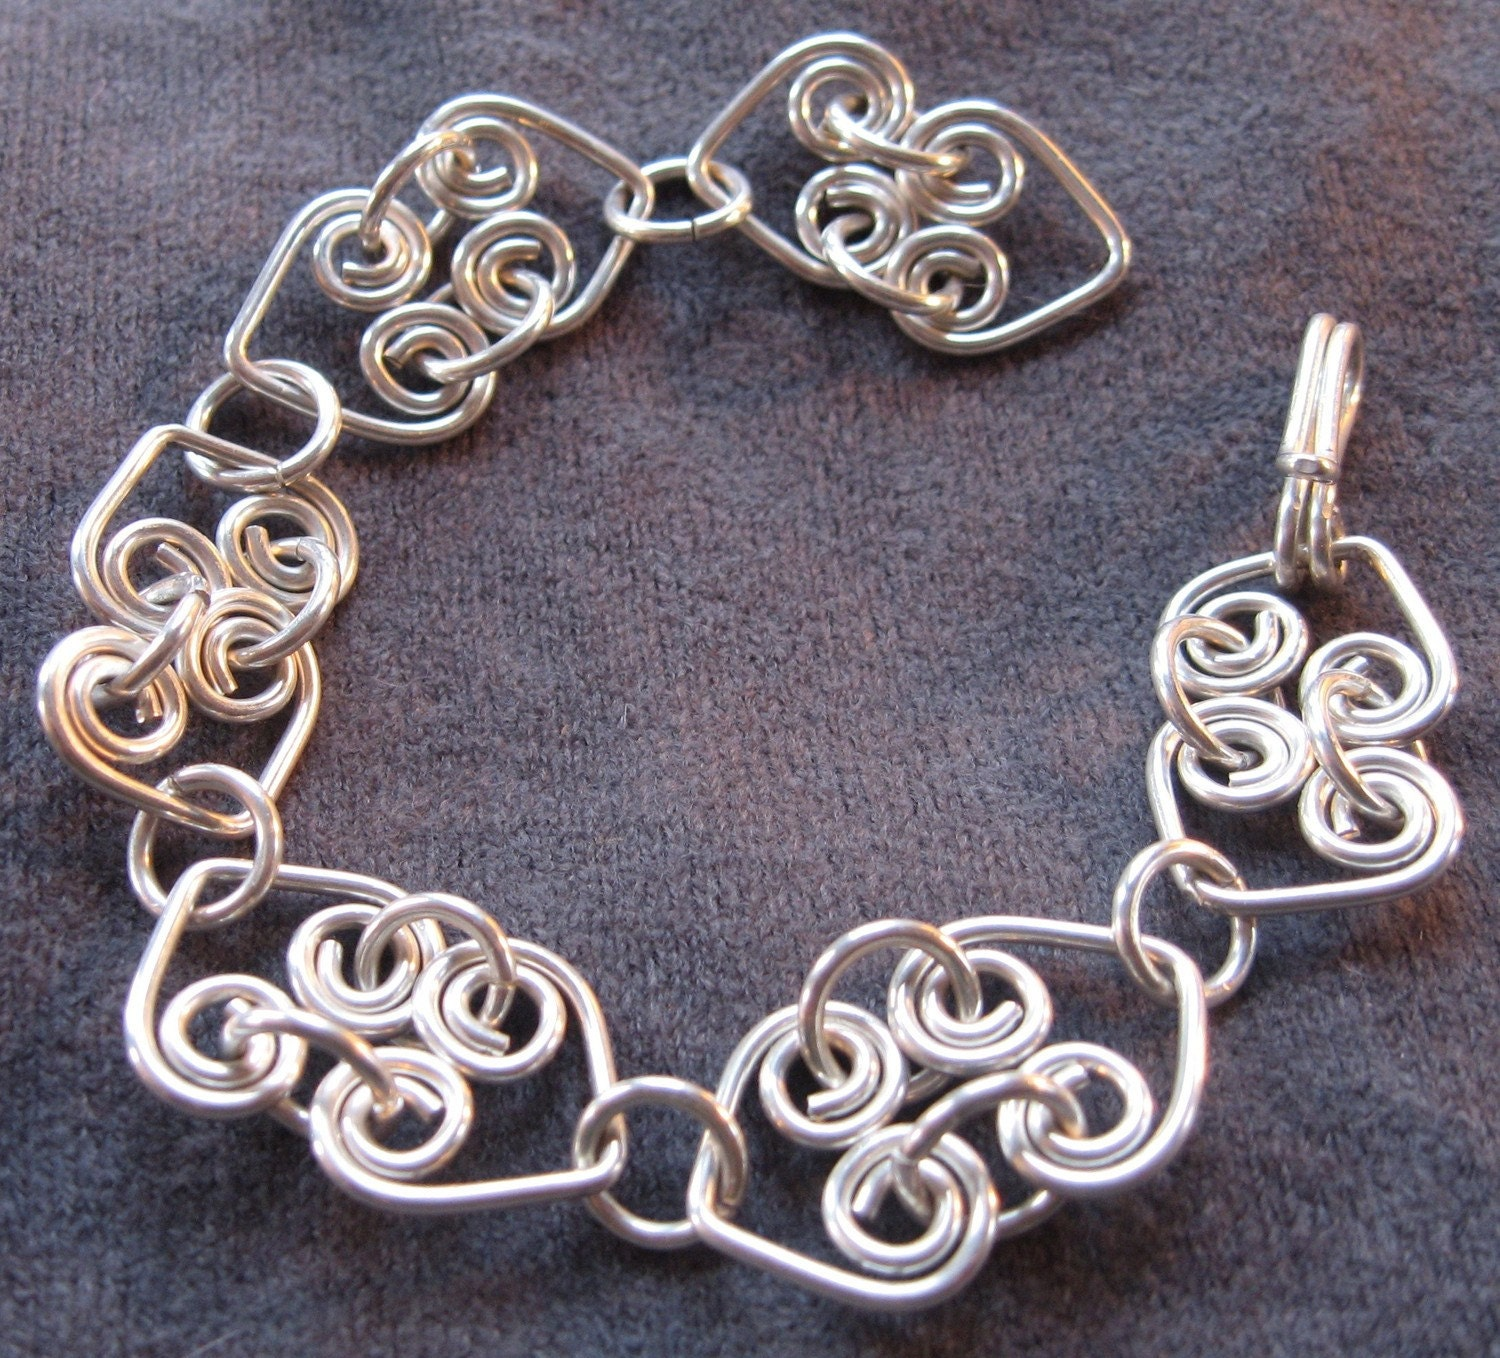 Wire Bracelets With Charms: 1000+ Images About Wire Wrapped Bracelets On Pinterest